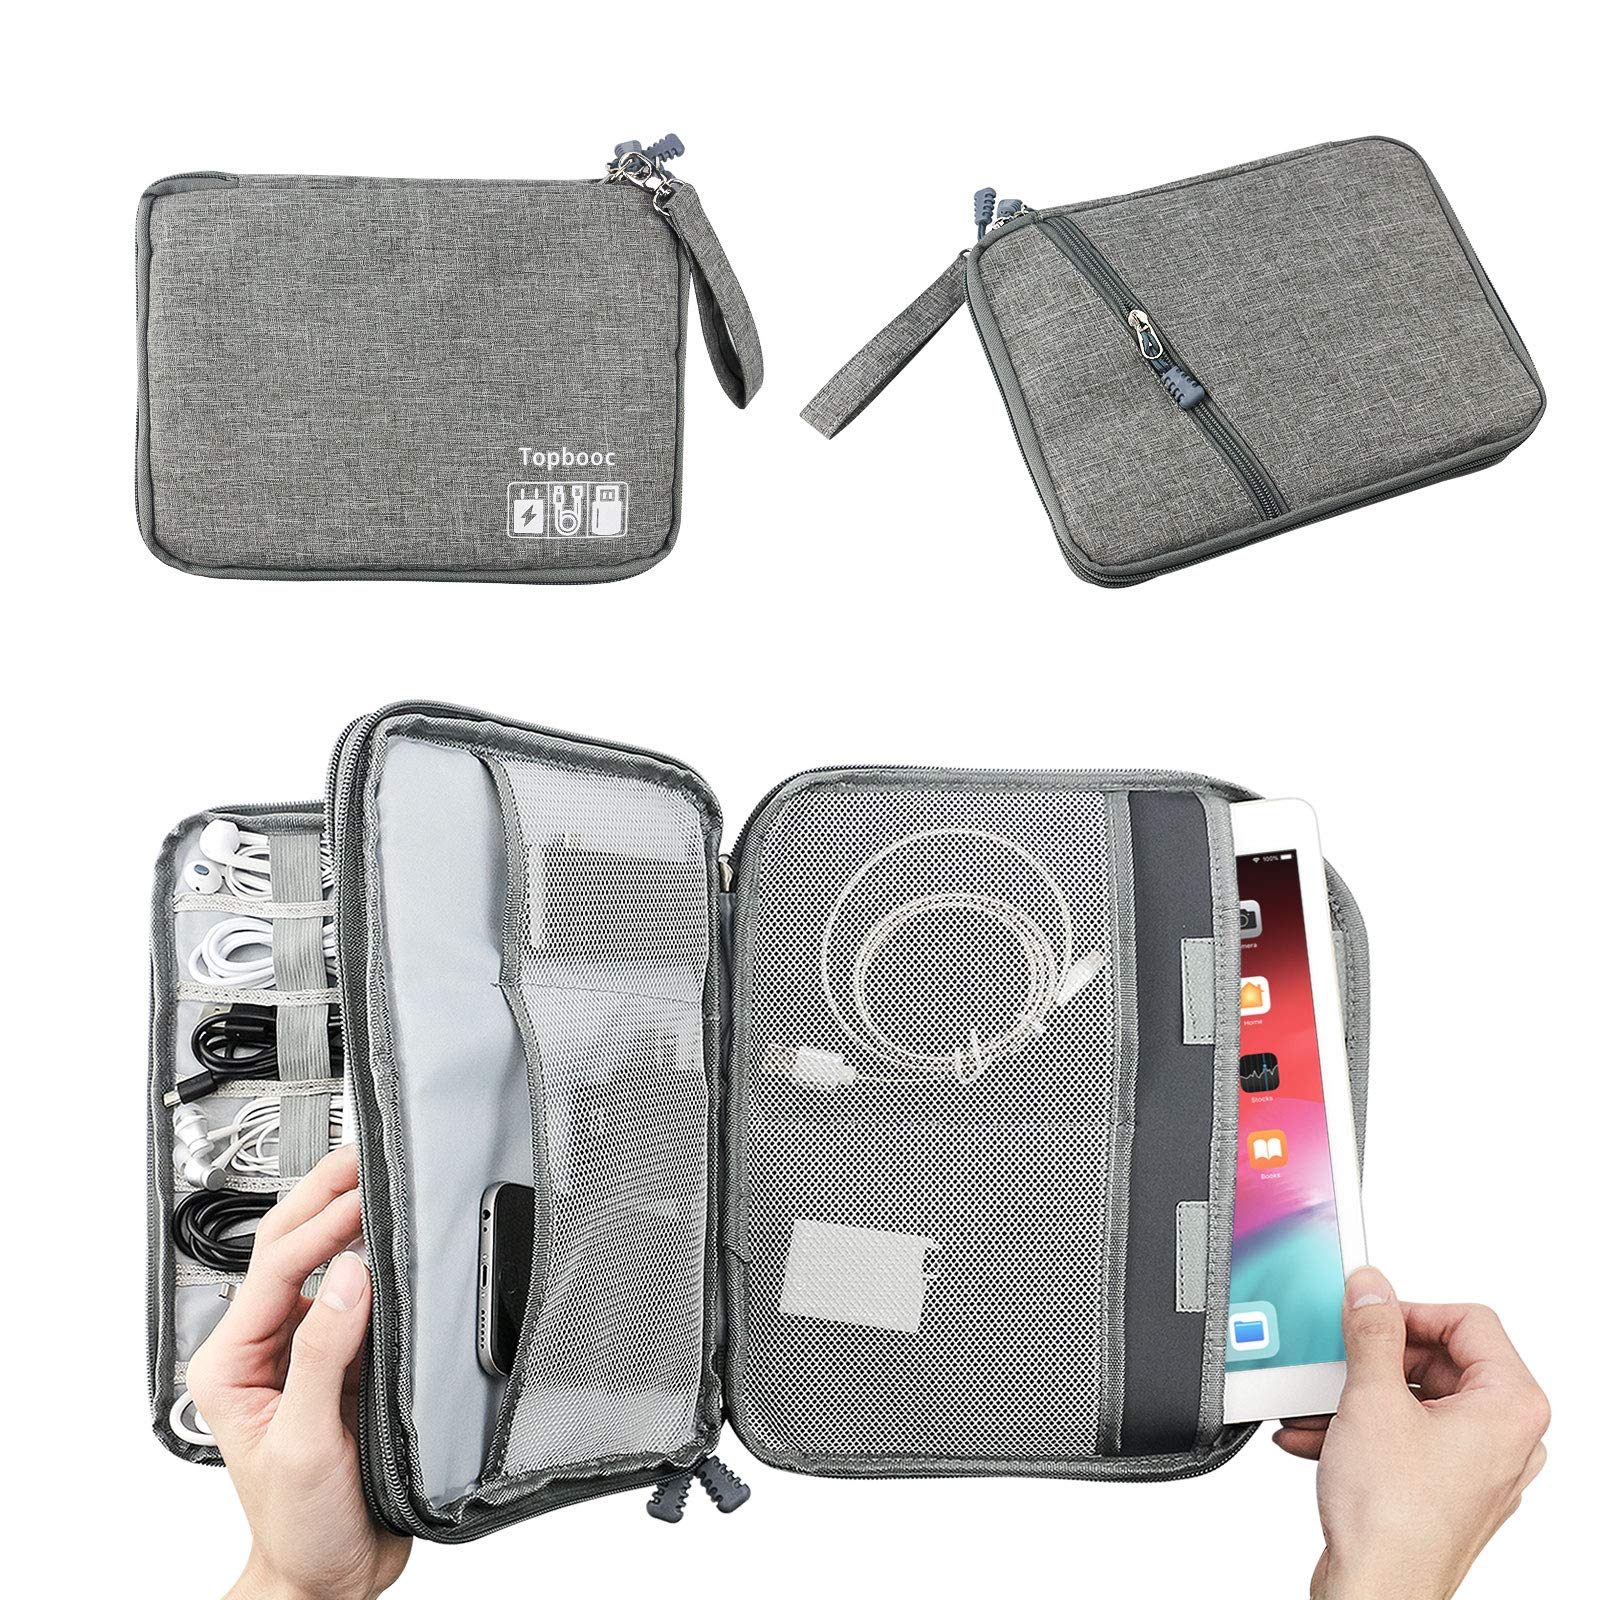 Universal Electronics Accessories Organizer, Waterproof Portable Cable Organizer Bag,Travel Gear Carry Bag for Cables (L, Classic-Grey)